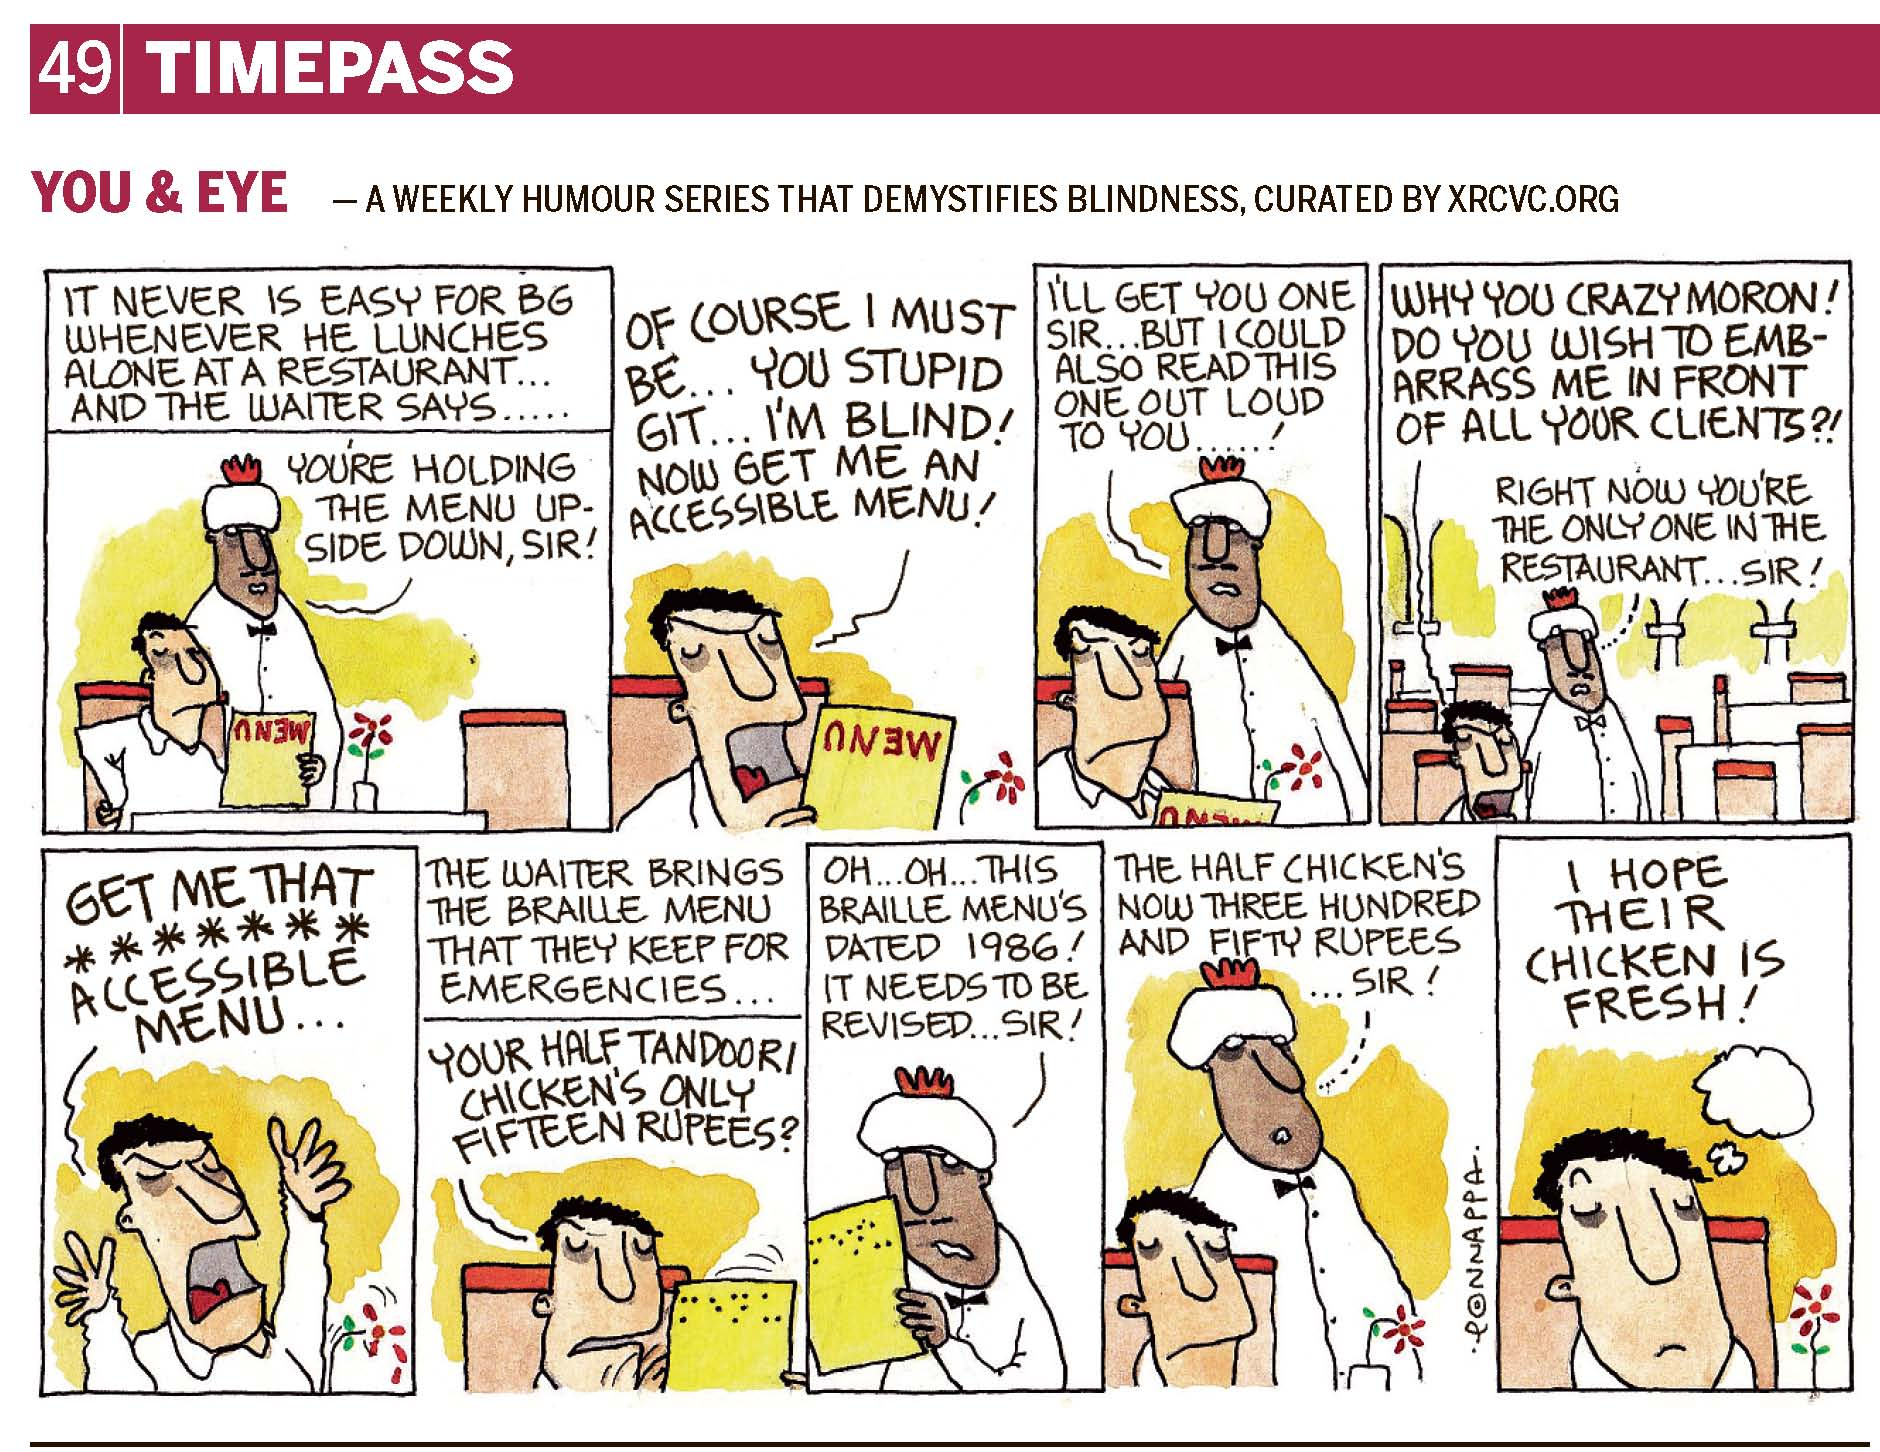 Page 49 | TIMEPASS YOU & EYE – A WEEKLY HUMOUR SERIES THAT DEMYSTIFIES BLINDNESS, CURATED BY XRCVC.ORG Image description: A cartoon strip with 9 frames… Frame 1: (BG is sitting at a table with a menu in his hand held upside down. There is a flower in a vase on the table and another chair is seen opposite BG. A waiter is standing close by.) Text: It never is easy for BG whenever he lunches alone at a restaurant… and the waiter says… Waiter: You're holding the menu upside down, Sir! Frame 2: (A close-up of BG screaming in frustration as he holds the menu upside down) BG: Of course I must be… you stupid git… I'm blind! Now get me an accessible menu! Frame 3: (BG sitting with his mouth shut, & the menu held upside down. The waiter continues to speak.) Waiter: I'll get you one, Sir… but I could also read this one out loud to you…! Frame 4: (The waiter is standing near BG who is screaming; and the restaurant has no other customers.) BG: Why you crazy moron! Do you wish to embarrass me in front of all your clients?! Waiter: Right now, you're the only one in the restaurant… Sir! Frame 5: (A close-up of BG screaming in frustration as he throws his arms up in the air) BG: GET ME THAT ******* ACCESSIBLE MENU… Frame 6: (A close-up of BG holding another card. The Braille dots on the card form the word 'MENU'.) Text: The waiter brings the Braille menu that they keep for emergencies… BG: Your half tandoori chicken's only fifteen rupees? Frame 7: (The waiter looks surprised as he takes a look at the Braille menu.) Waiter: Oh… Oh… This Braille menu's dated 1986! It needs to be revised… Sir! Frame 8: (The waiter still standing next to BG.) Waiter: The half chicken's now three hundred and fifty rupees… Sir! Frame 9: (A close-up of BG thinking) I hope their chicken is fresh! (Signed Ponnappa, in Frame 8)